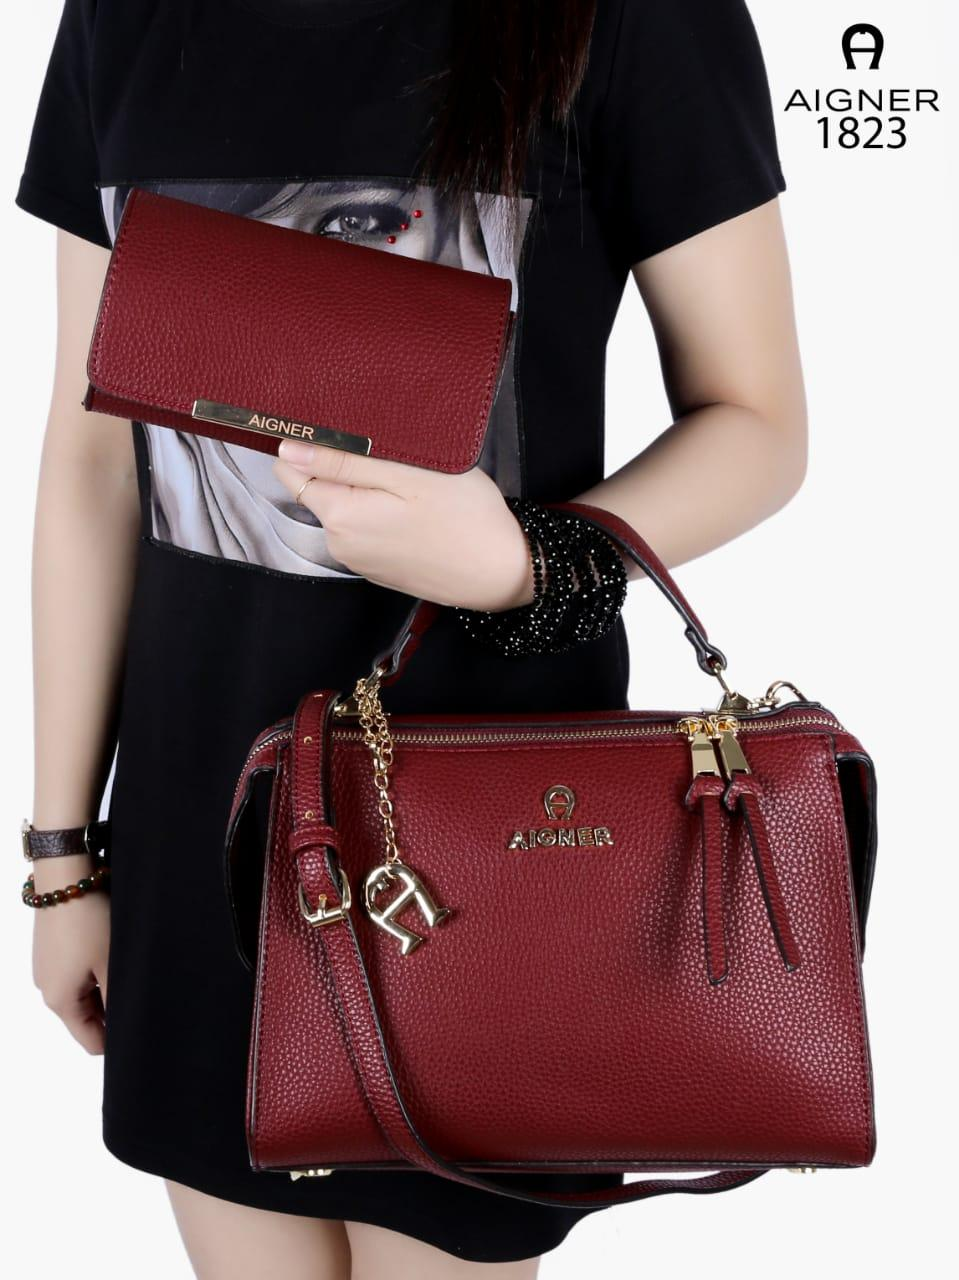 Harga Jual Tas New Designers Etienne Aigner 350000 Smesco Trade Wanita Munich Label 2in1 Smooth Leather Like Ori Hardware Gold 2904 1 Pds 194 X Design Ophelia Moodie Handbag With Wallet